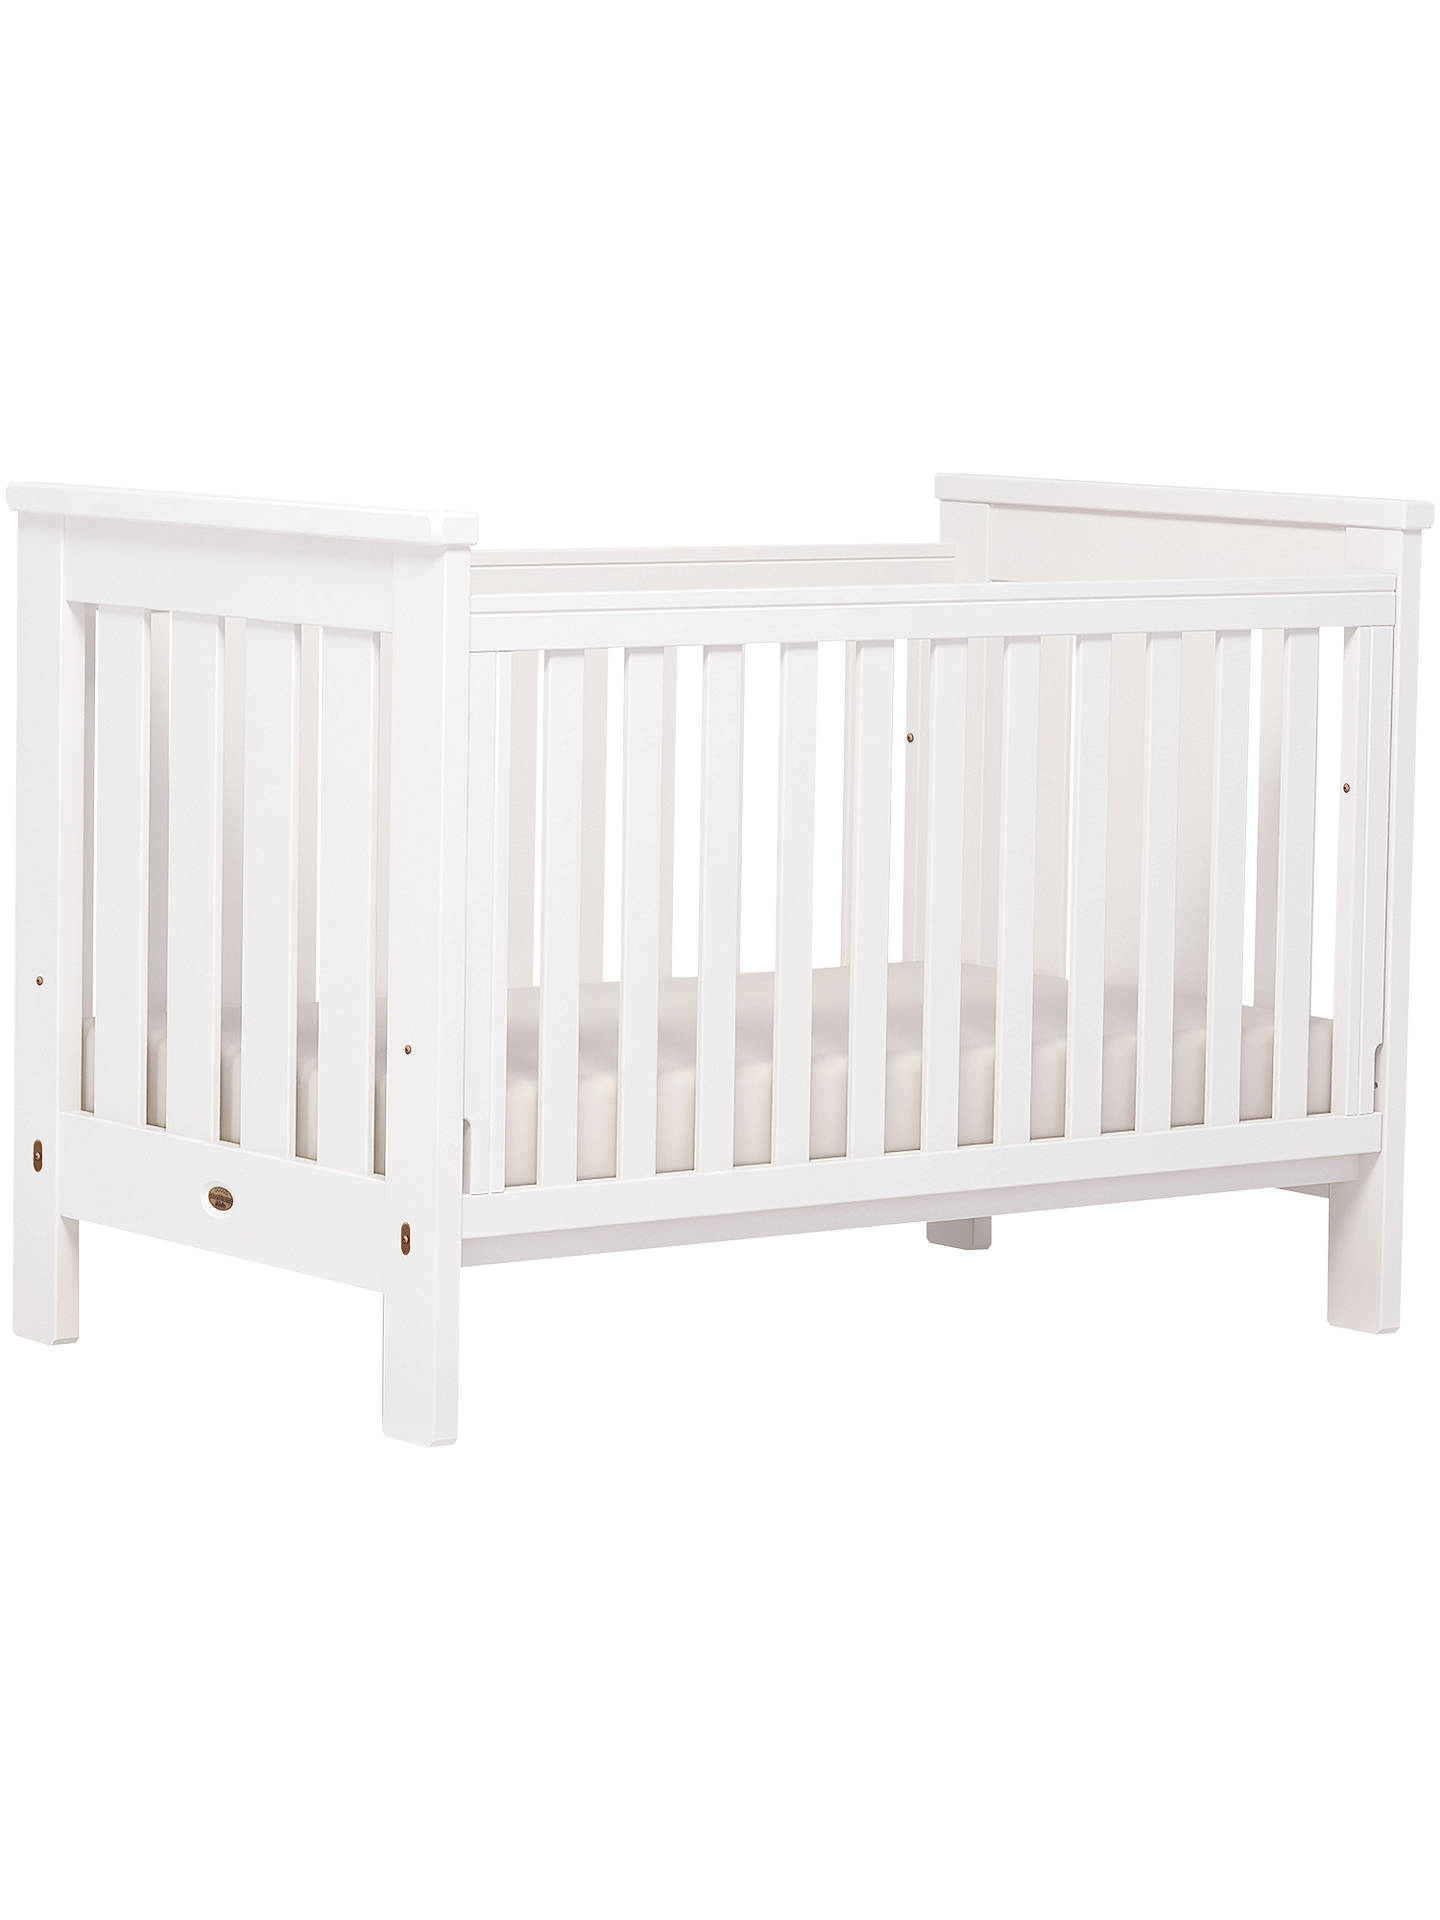 online store c1baf 7a7d3 Boori Pioneer Cotbed, White at John Lewis & Partners